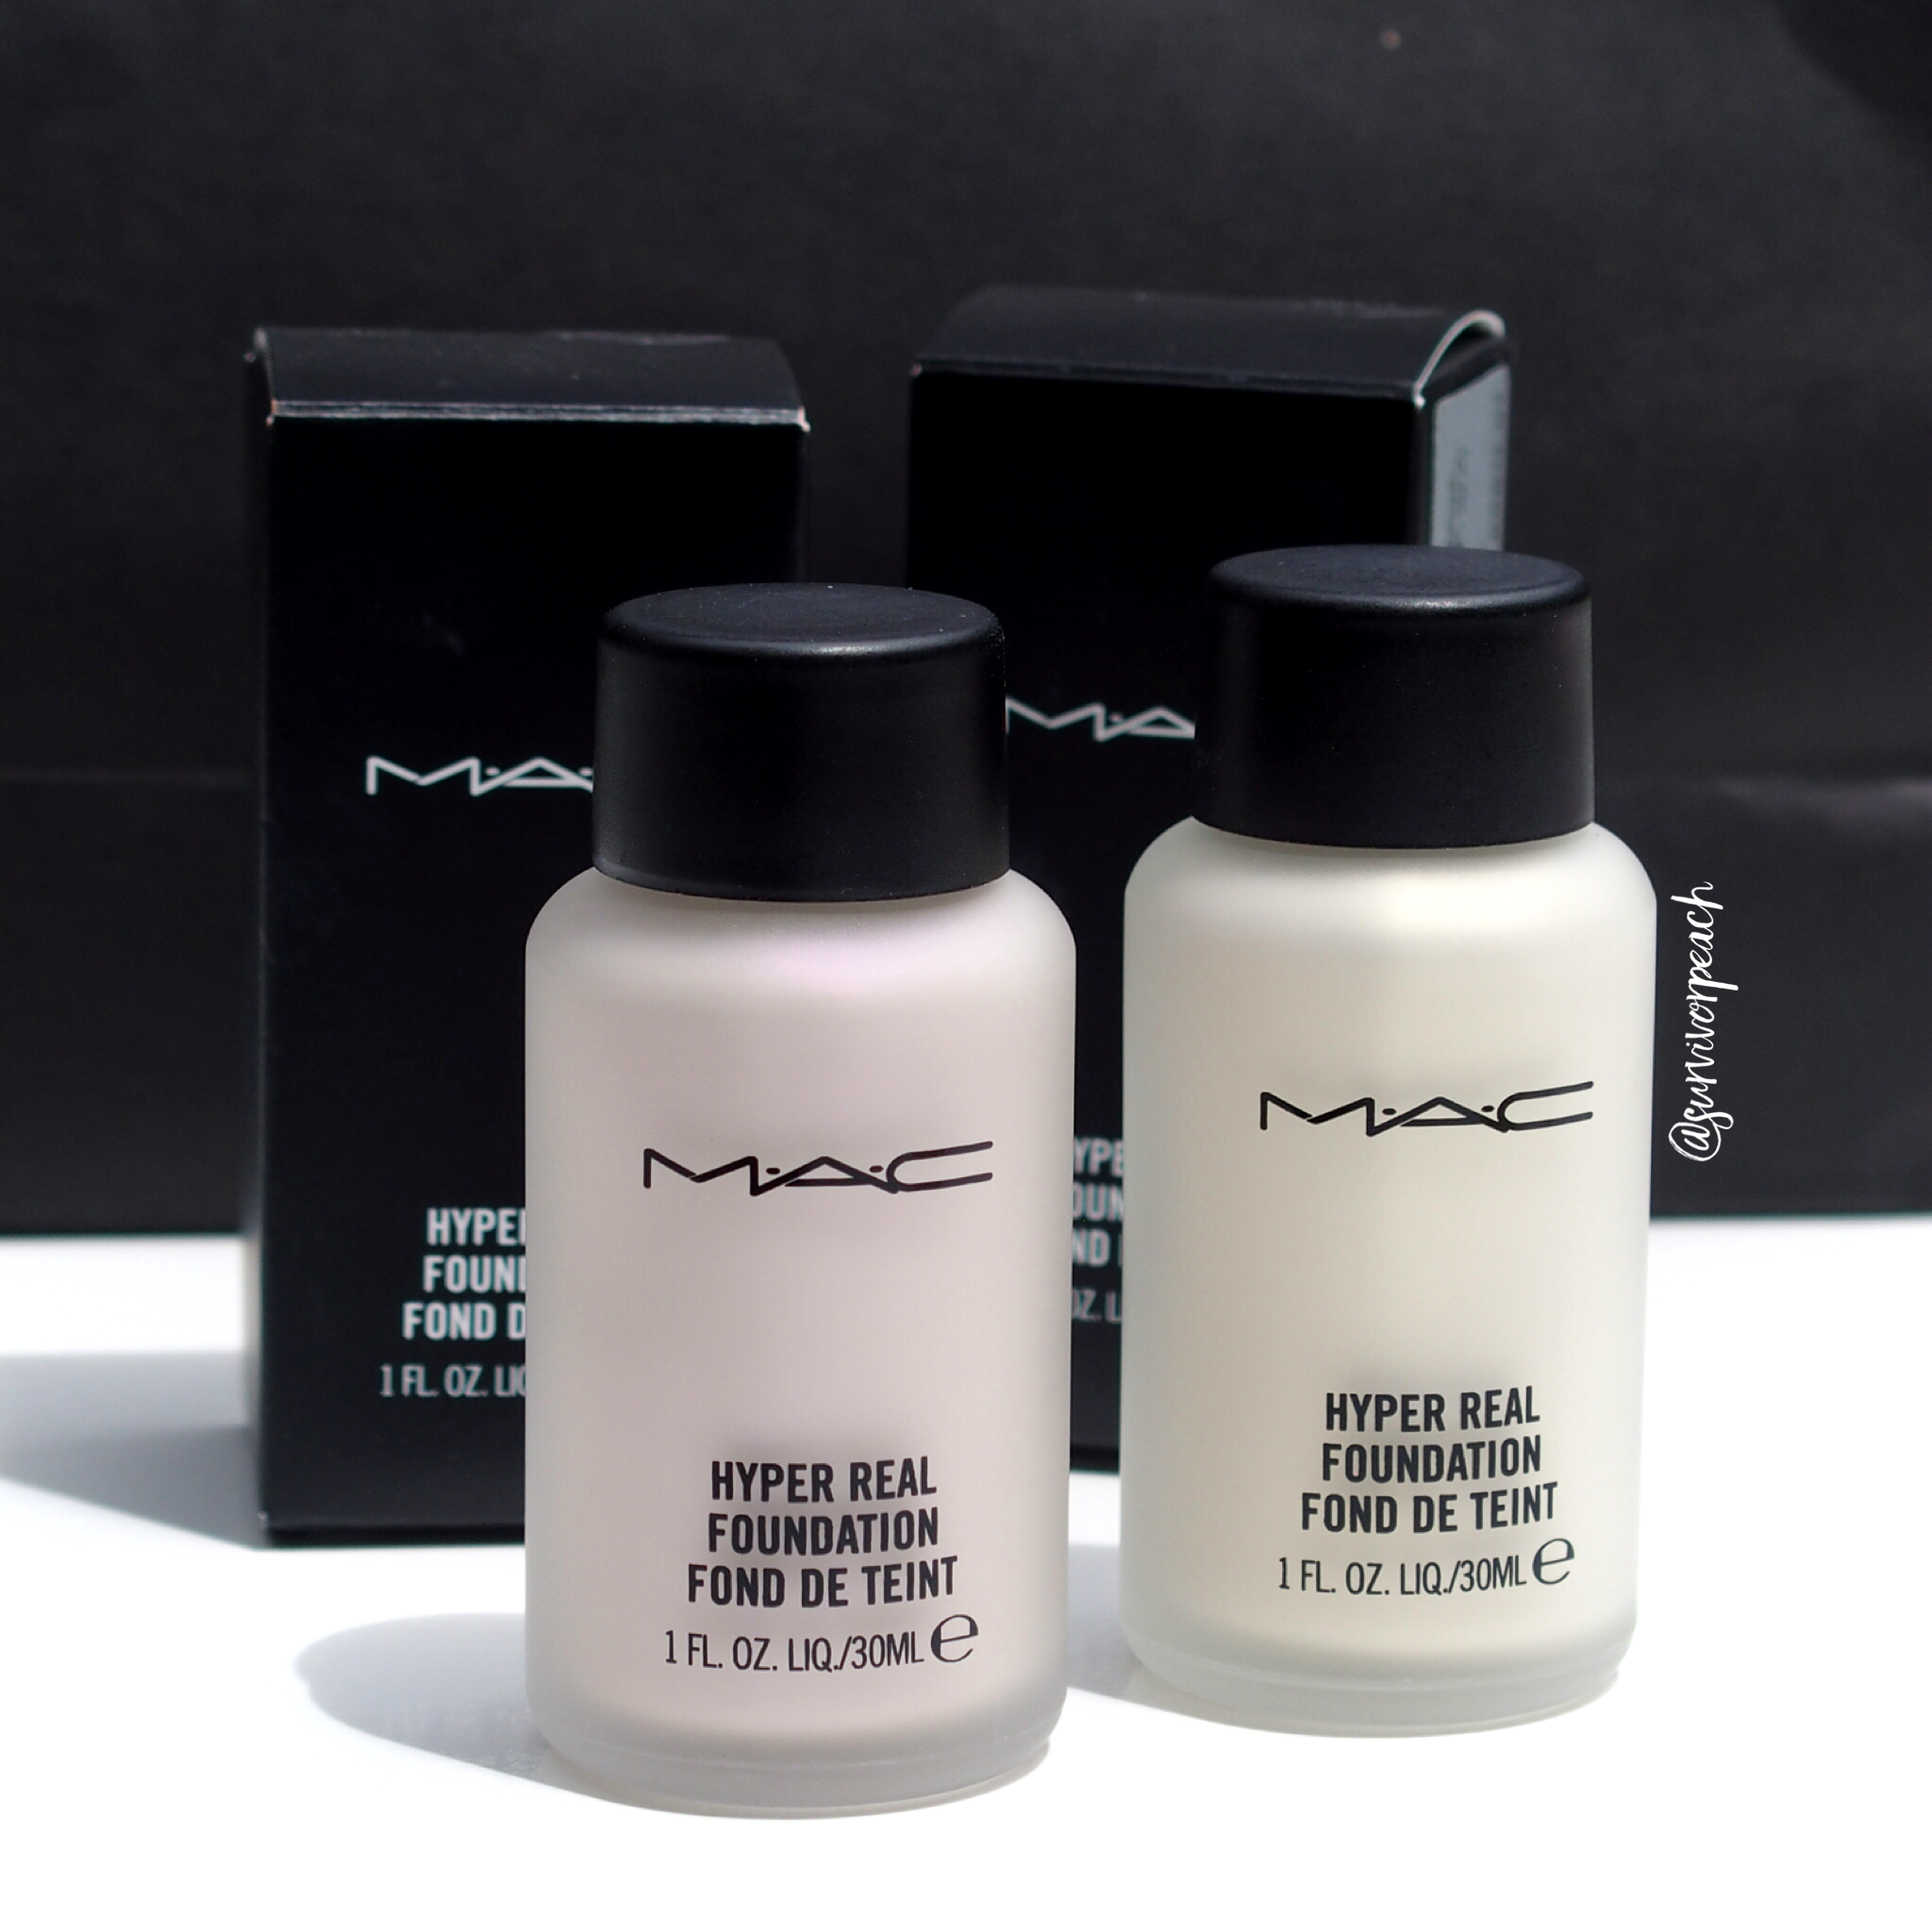 MAC Hyper Real foundations in shades Violet and Gold FX